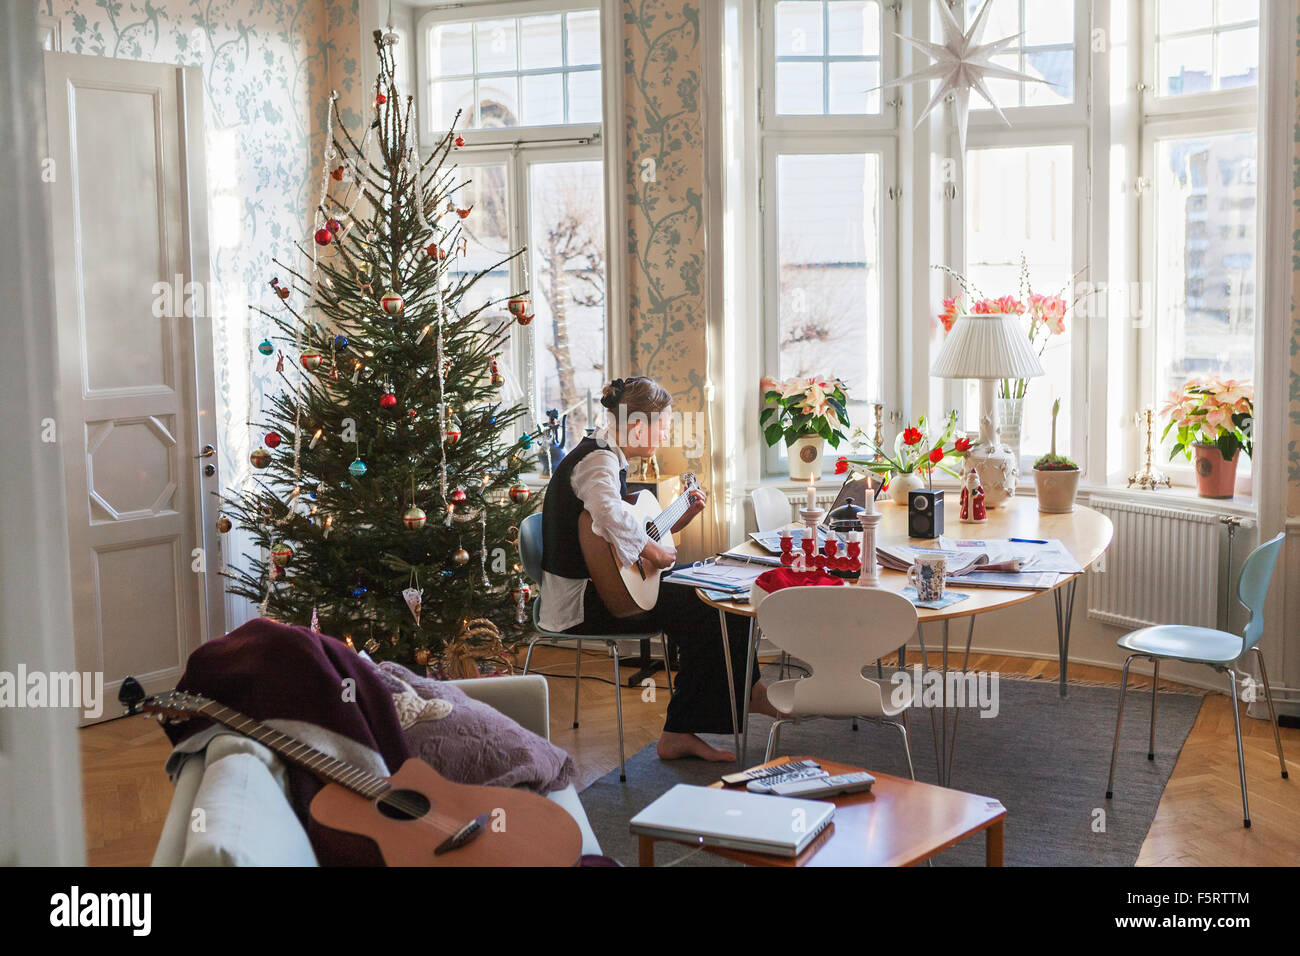 La Suède, Senior woman playing guitar in living room Photo Stock